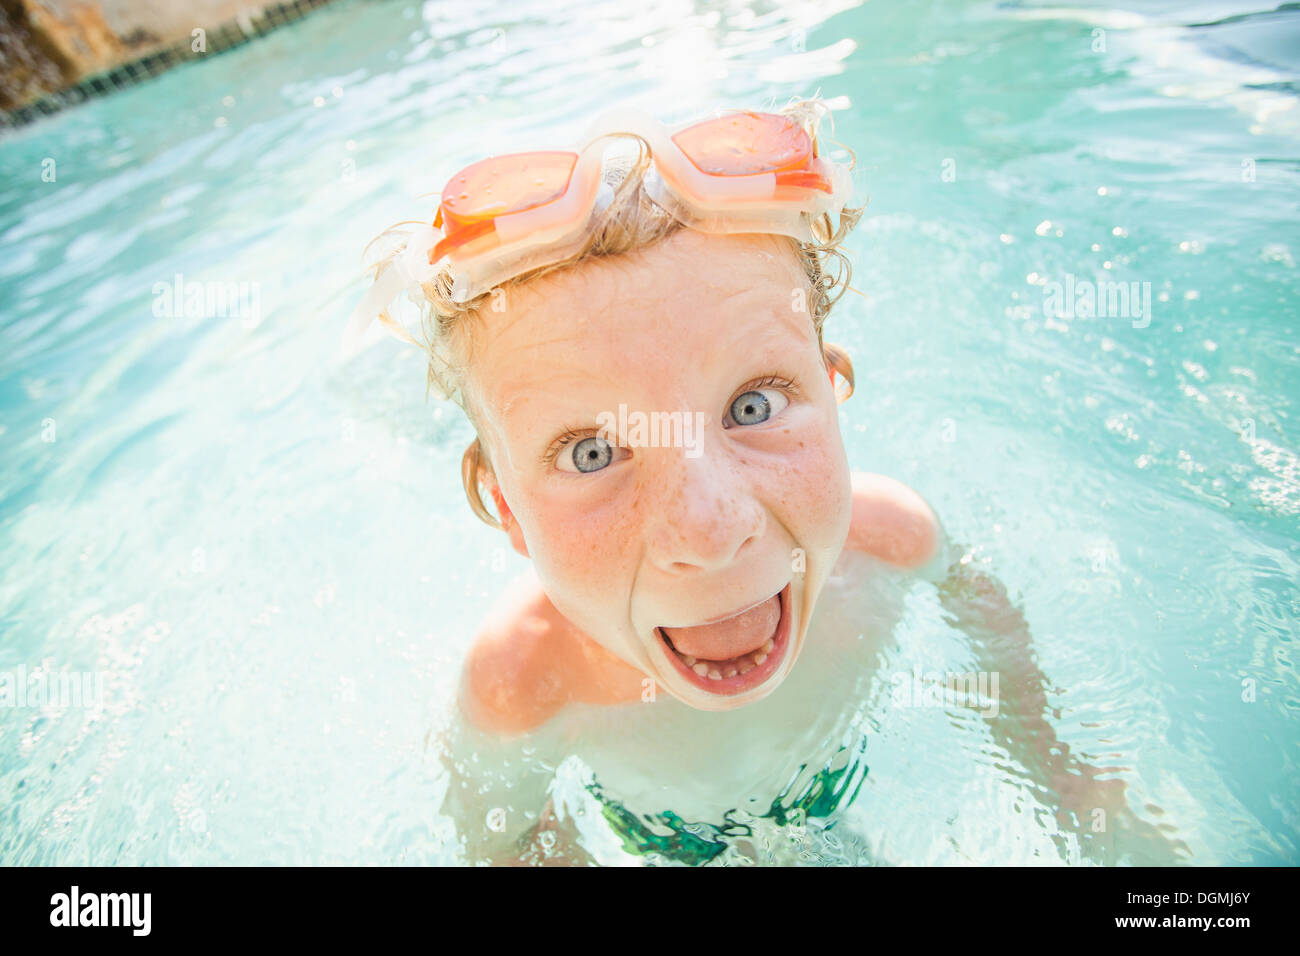 Boy 4 5 Swimming In Swimming Pool And Making Funny Face Stock Photo Royalty Free Image